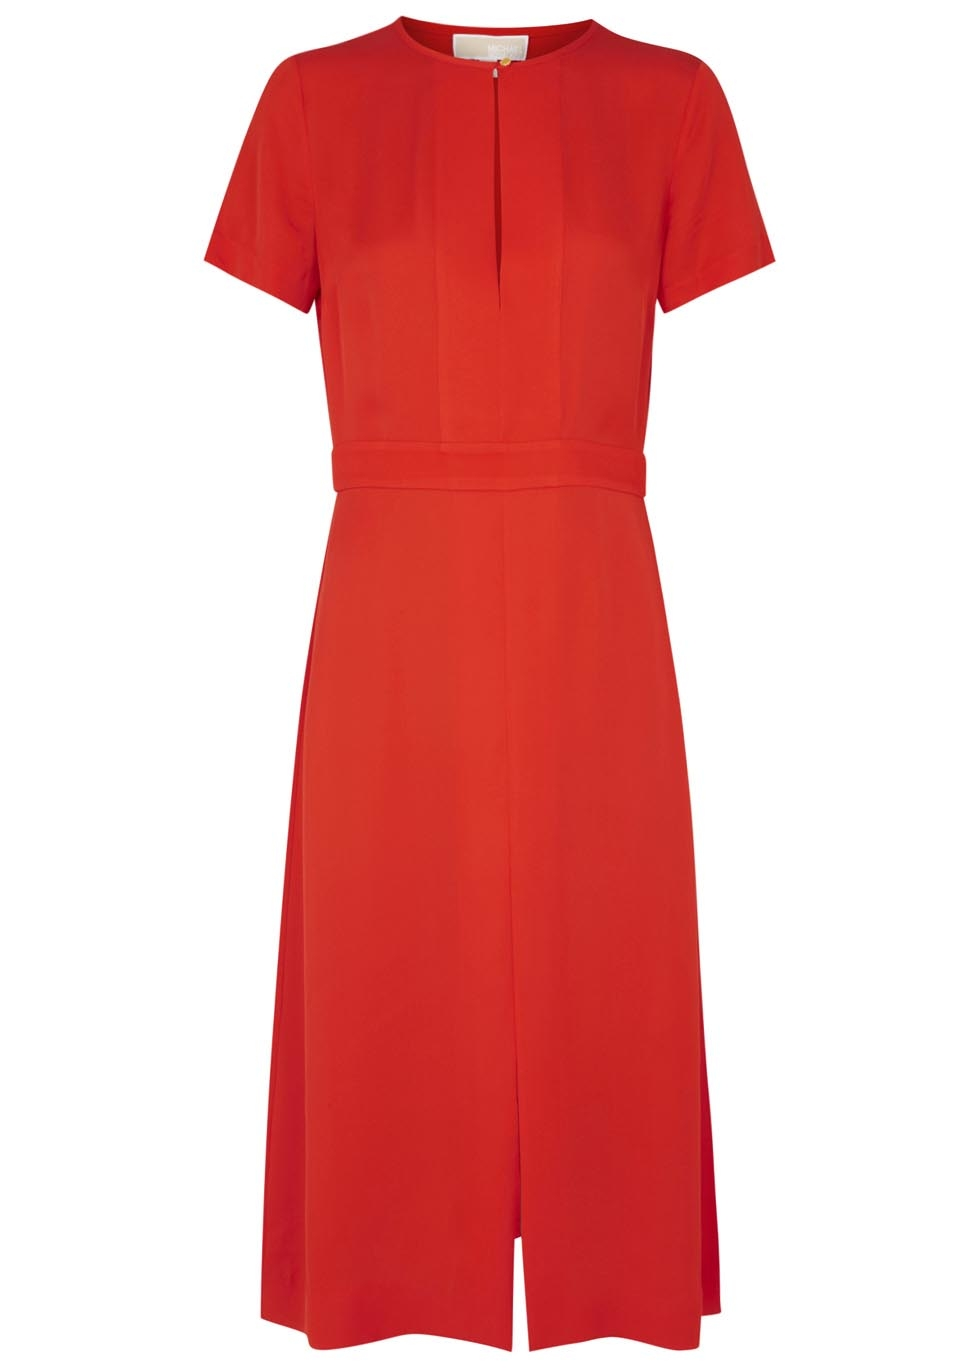 Michael Michael Kors silk midi dress, £265